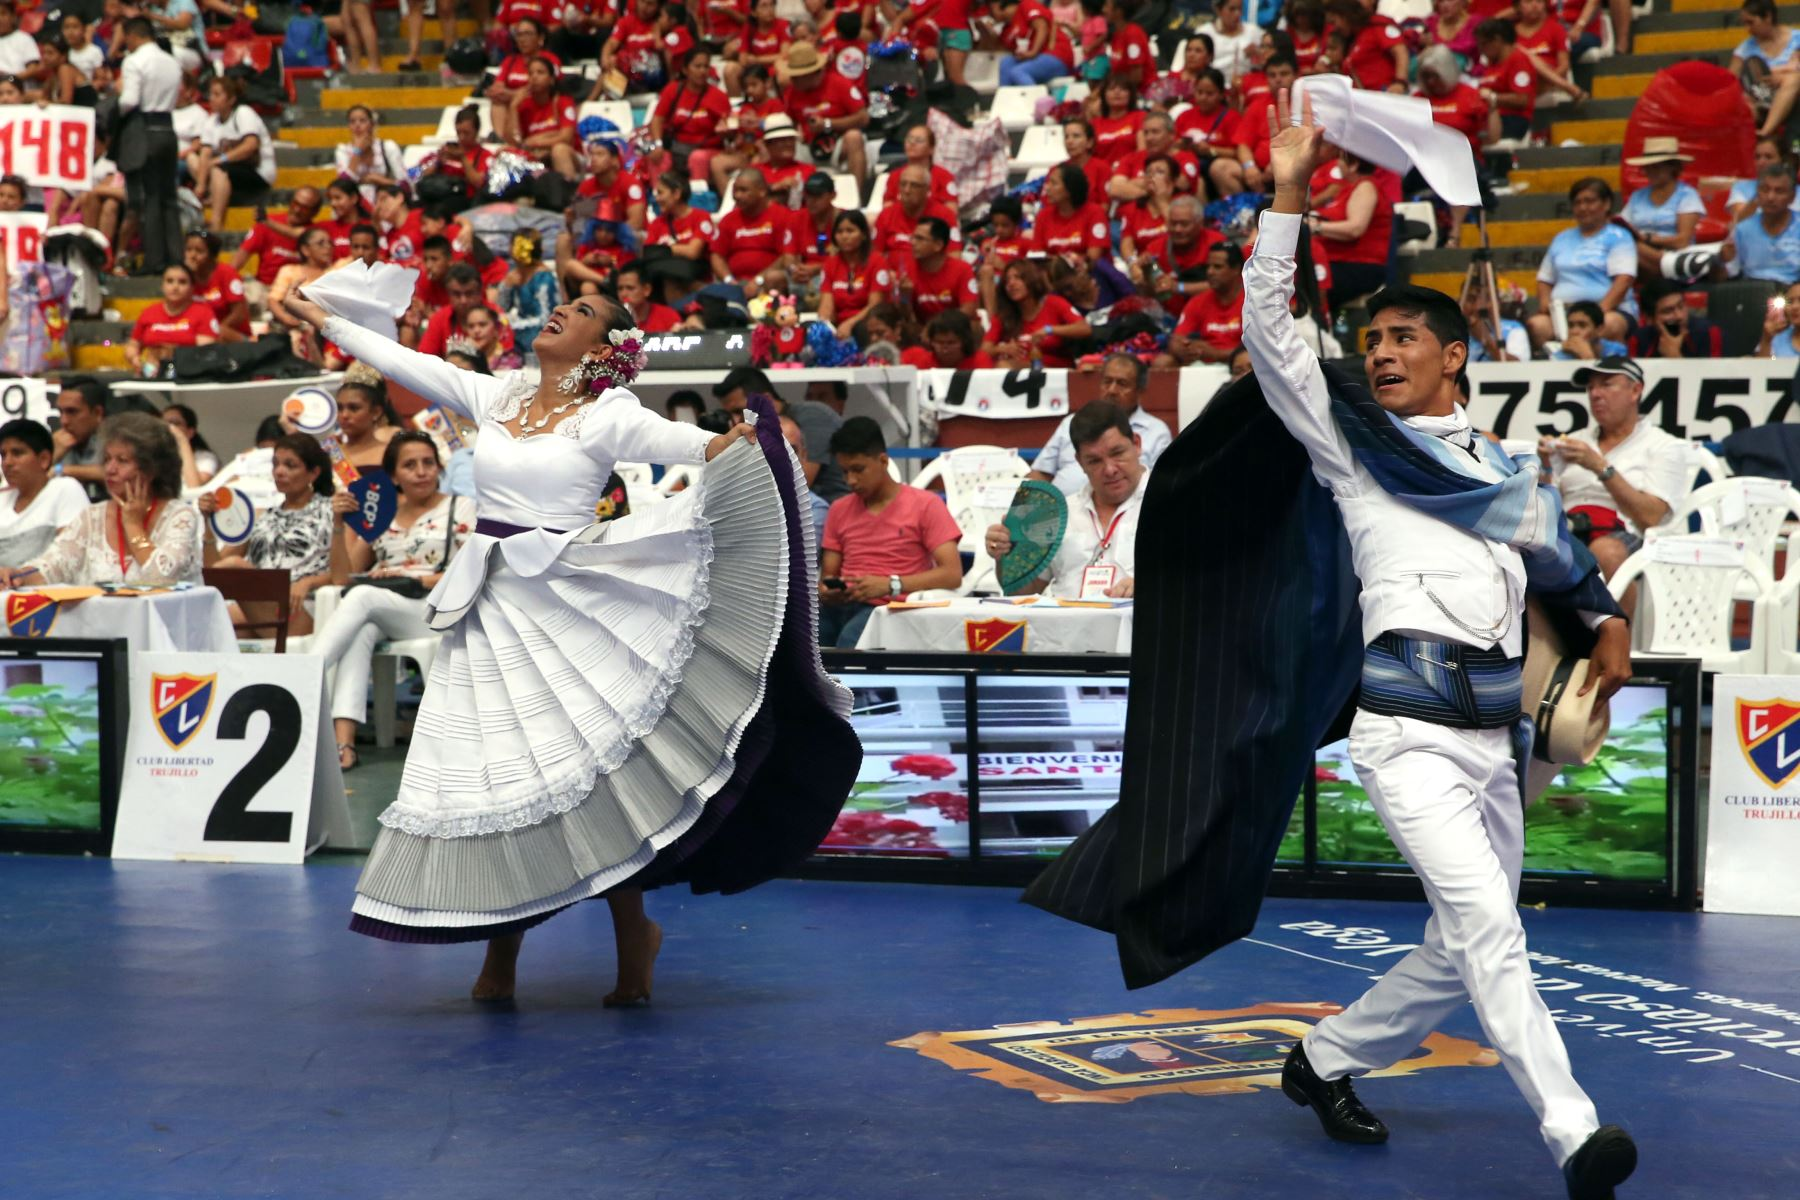 Peru: National Marinera Contest 2017 comes to an end | News